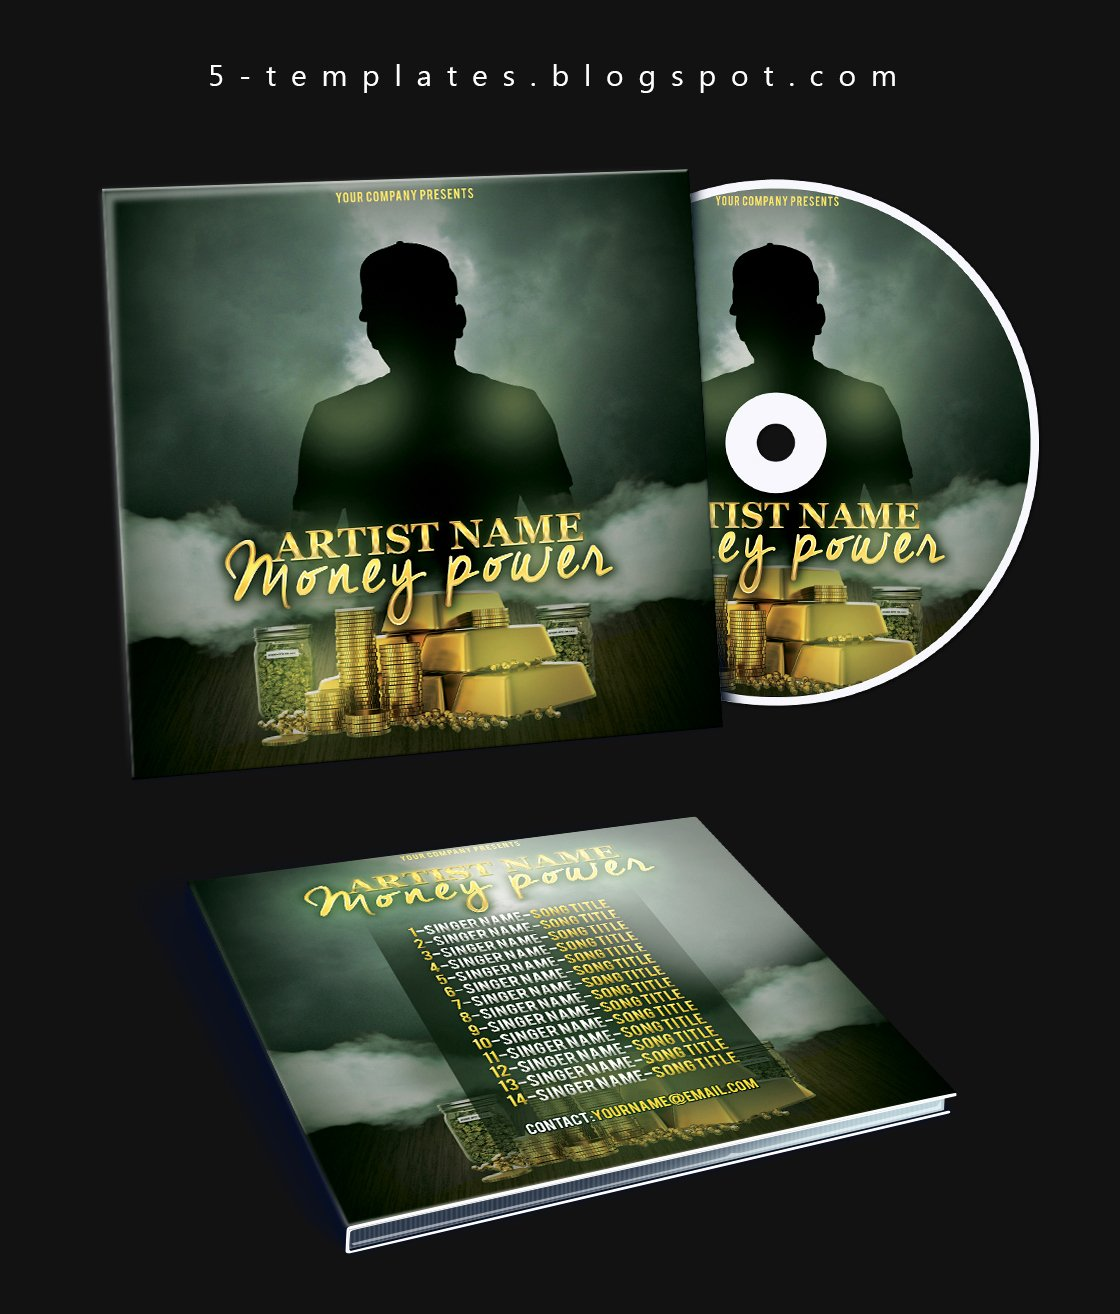 Cd Cover Template Photoshop Elegant the Power Mixtape Cd Cover Free Psd Template by Klarensm